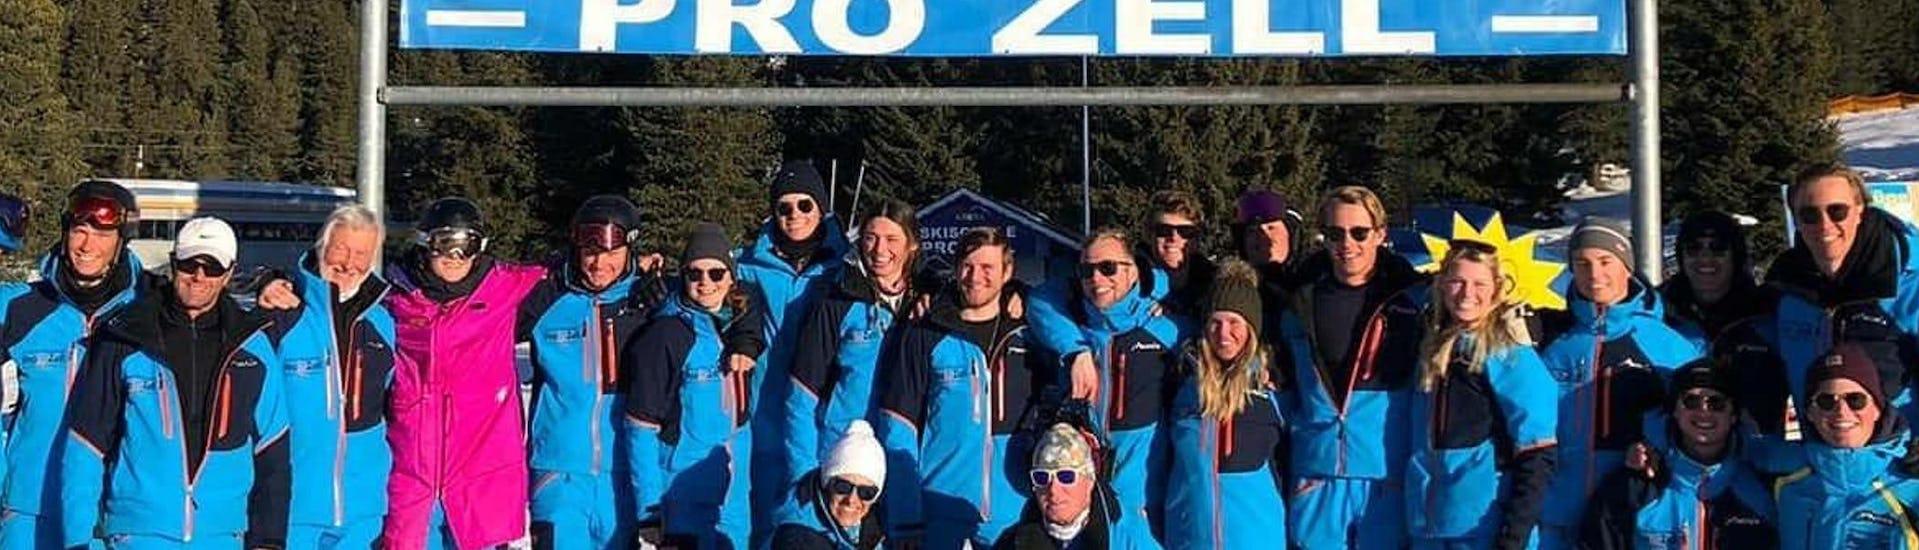 The ski instructors from the ski school Skischule Pro Zell in Zell am Ziller are smiling at the camera in a group photo.